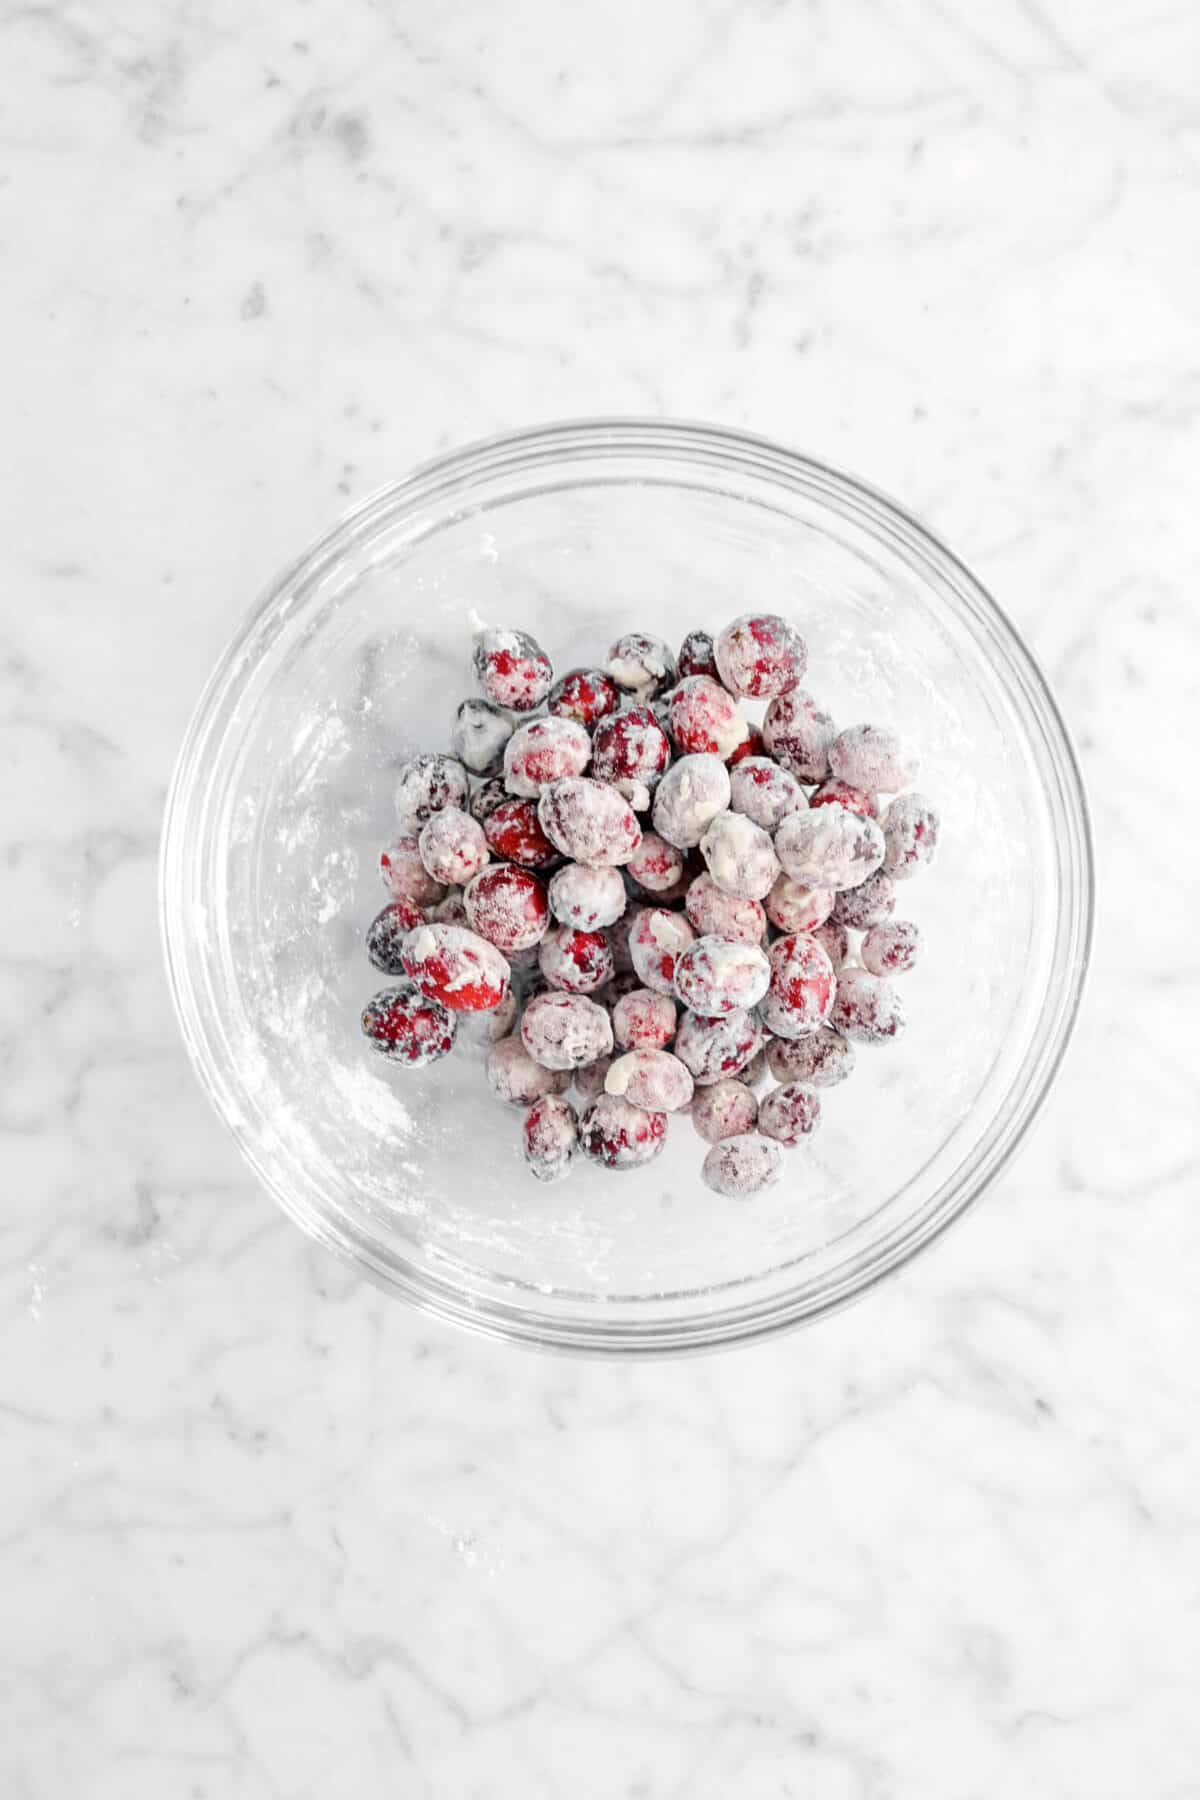 cranberries coated in flour in a glass bowl